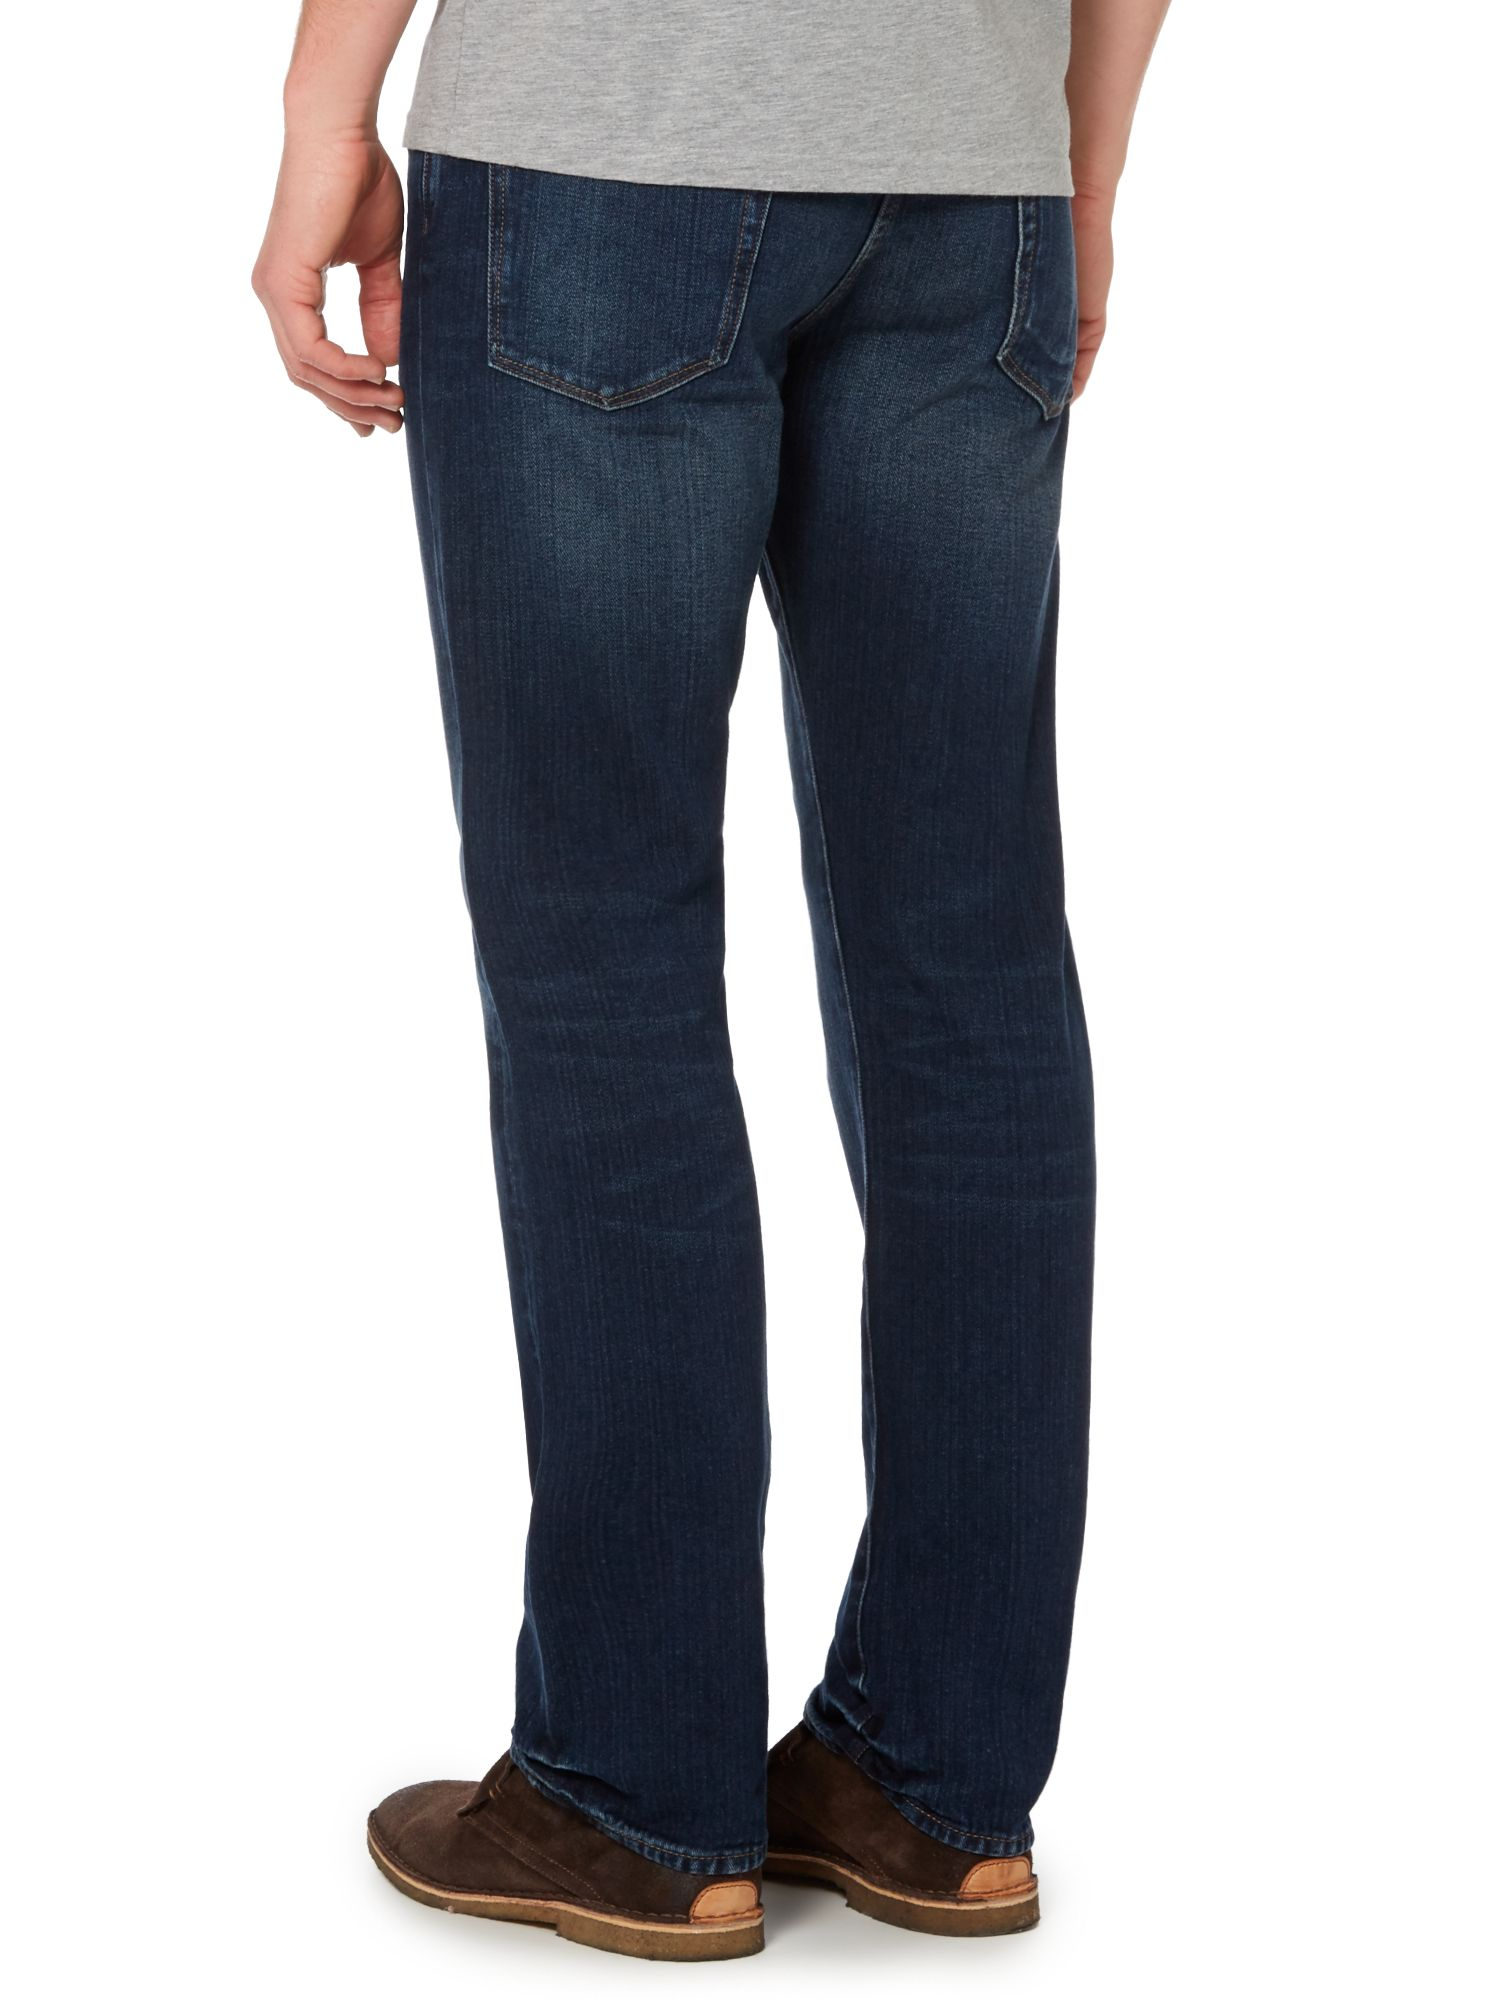 paul smith bootcut light wash jeans in blue for men lyst. Black Bedroom Furniture Sets. Home Design Ideas